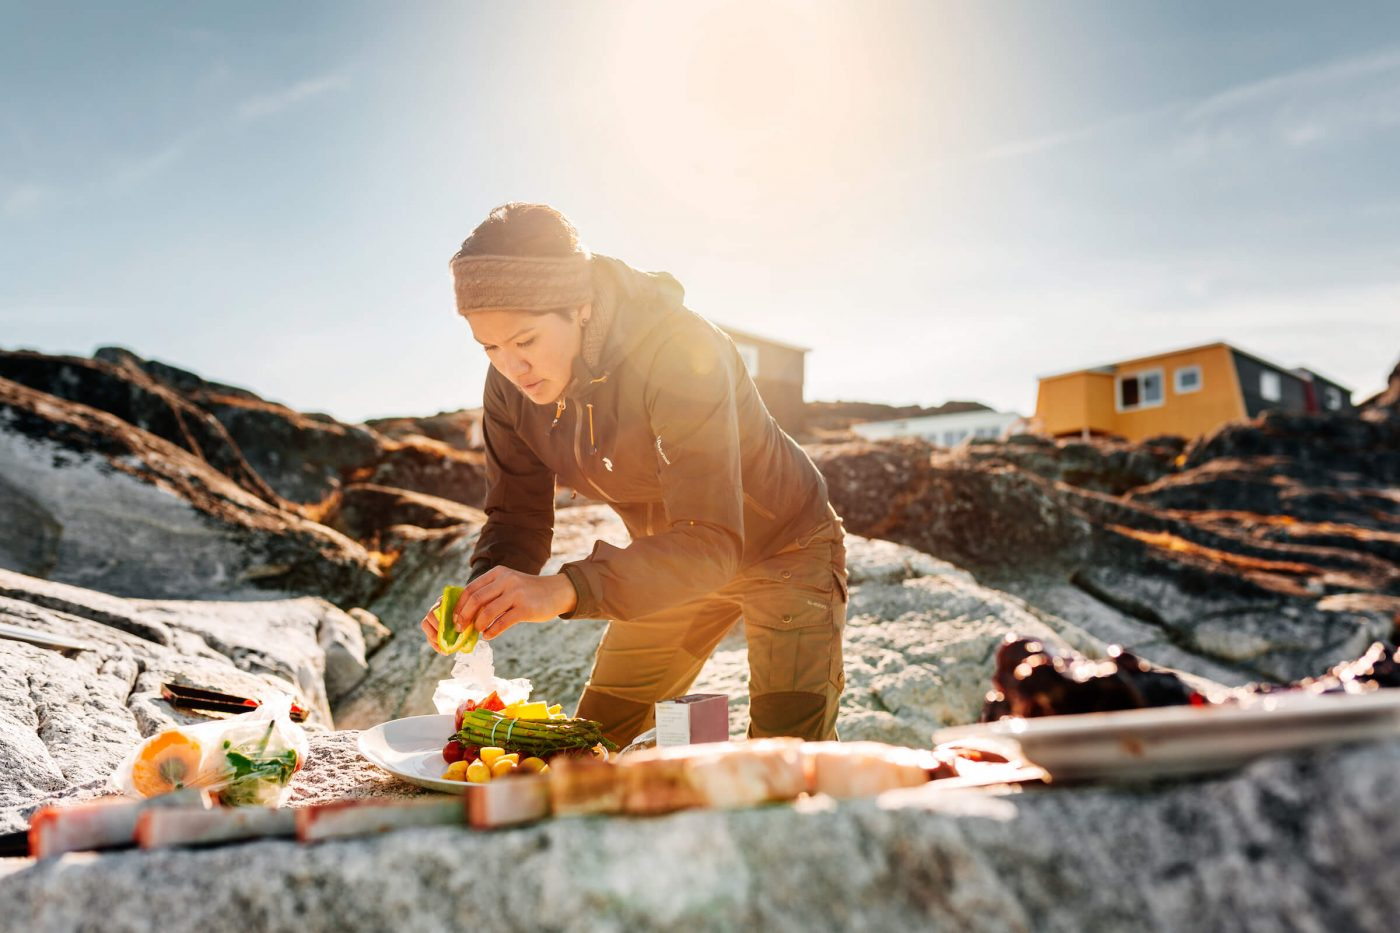 Woman preparing Greenlandic specialties on the rocks on the beach by Inuk Hostels in Nuuk in Greenland. By Rebecca Gustafsson